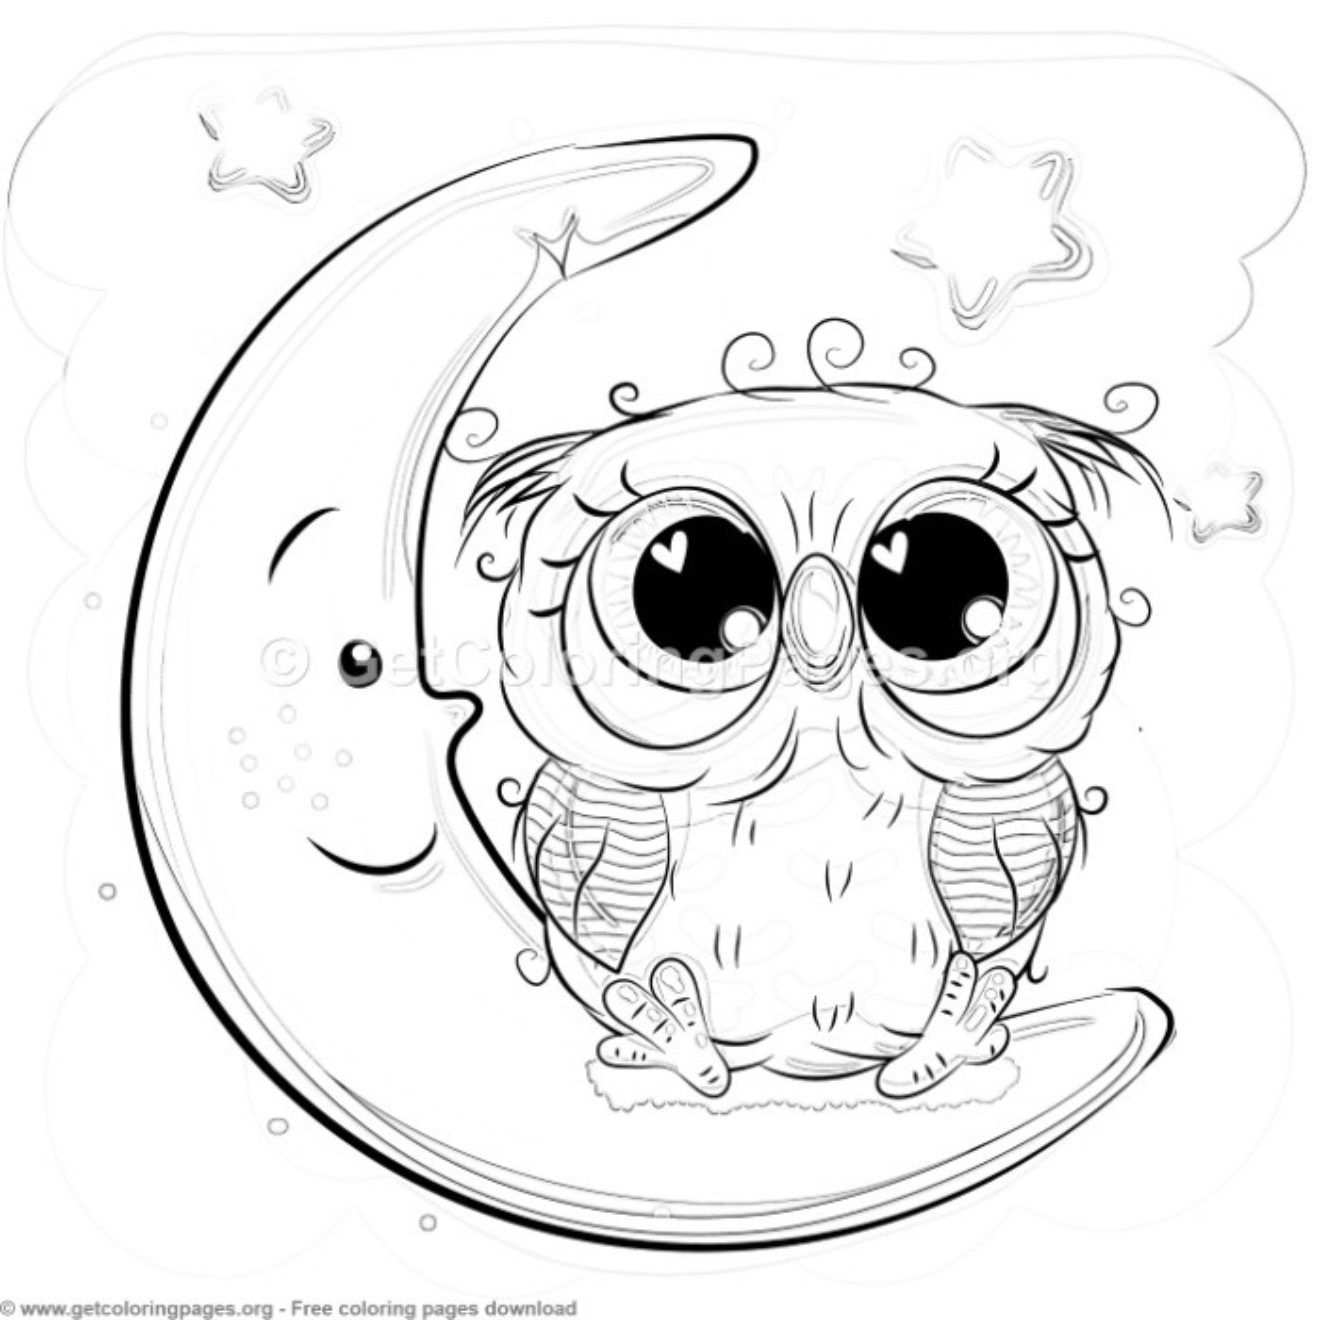 23 Cute Owl Coloring Pages Getcoloringpages Org Owl Coloring Pages Cute Owl Drawing Owl Drawing Simple